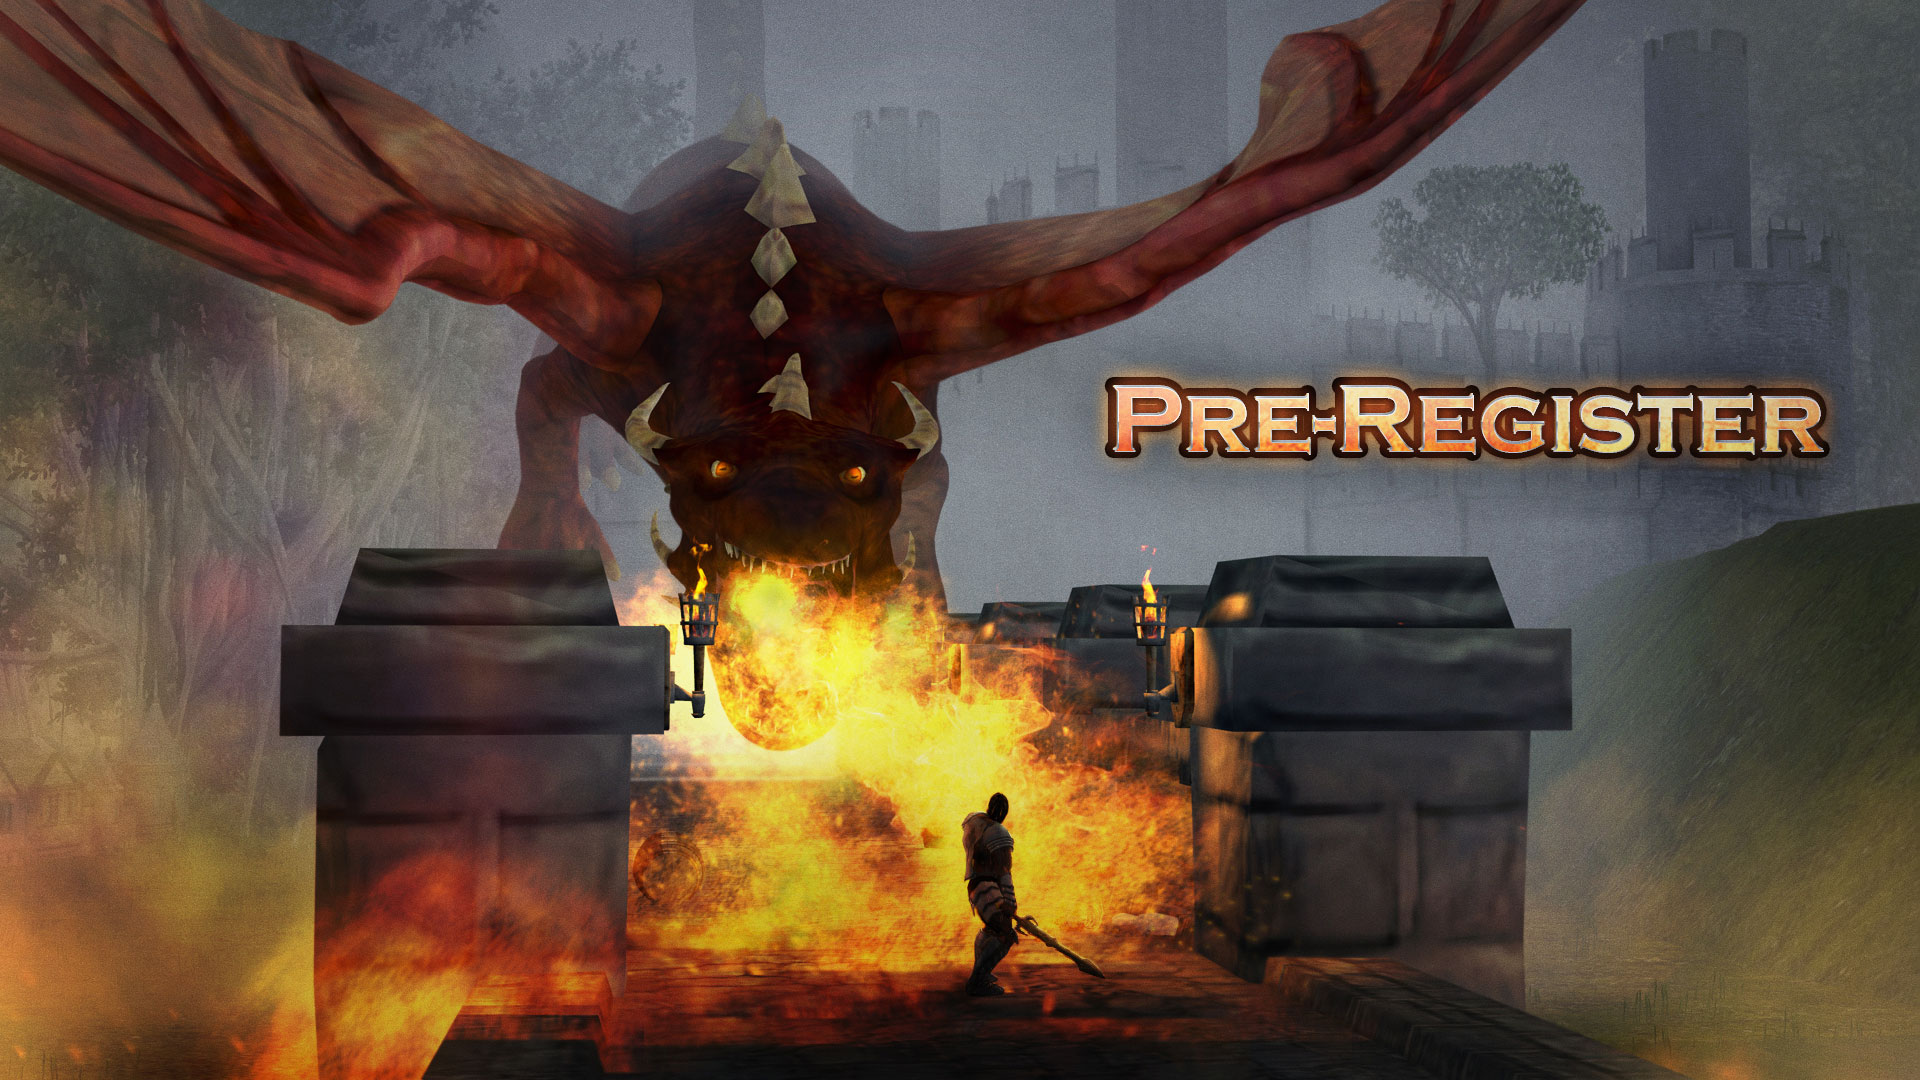 Guardian Light of the world Action RPG game Pre-Register Event